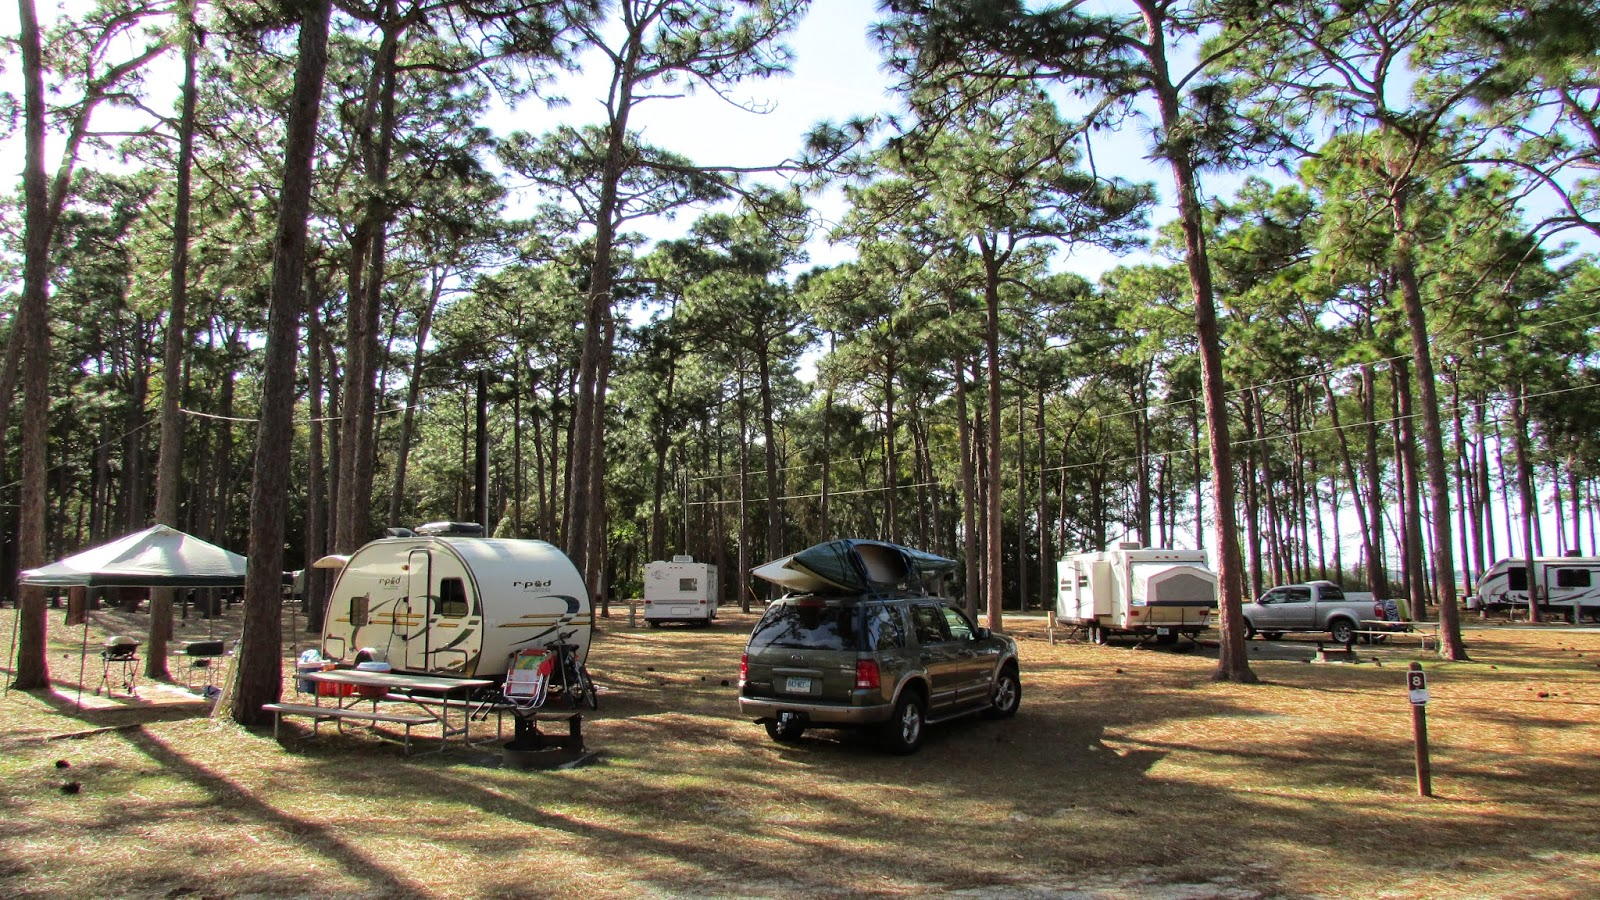 Gentil The Last Stop On Our Current Round Of Camping Is At Crooked River State Park  In St. Maryu0027s, GA. Although It Has Itu0027s Pretty Areas, The Campground Here  Is ...